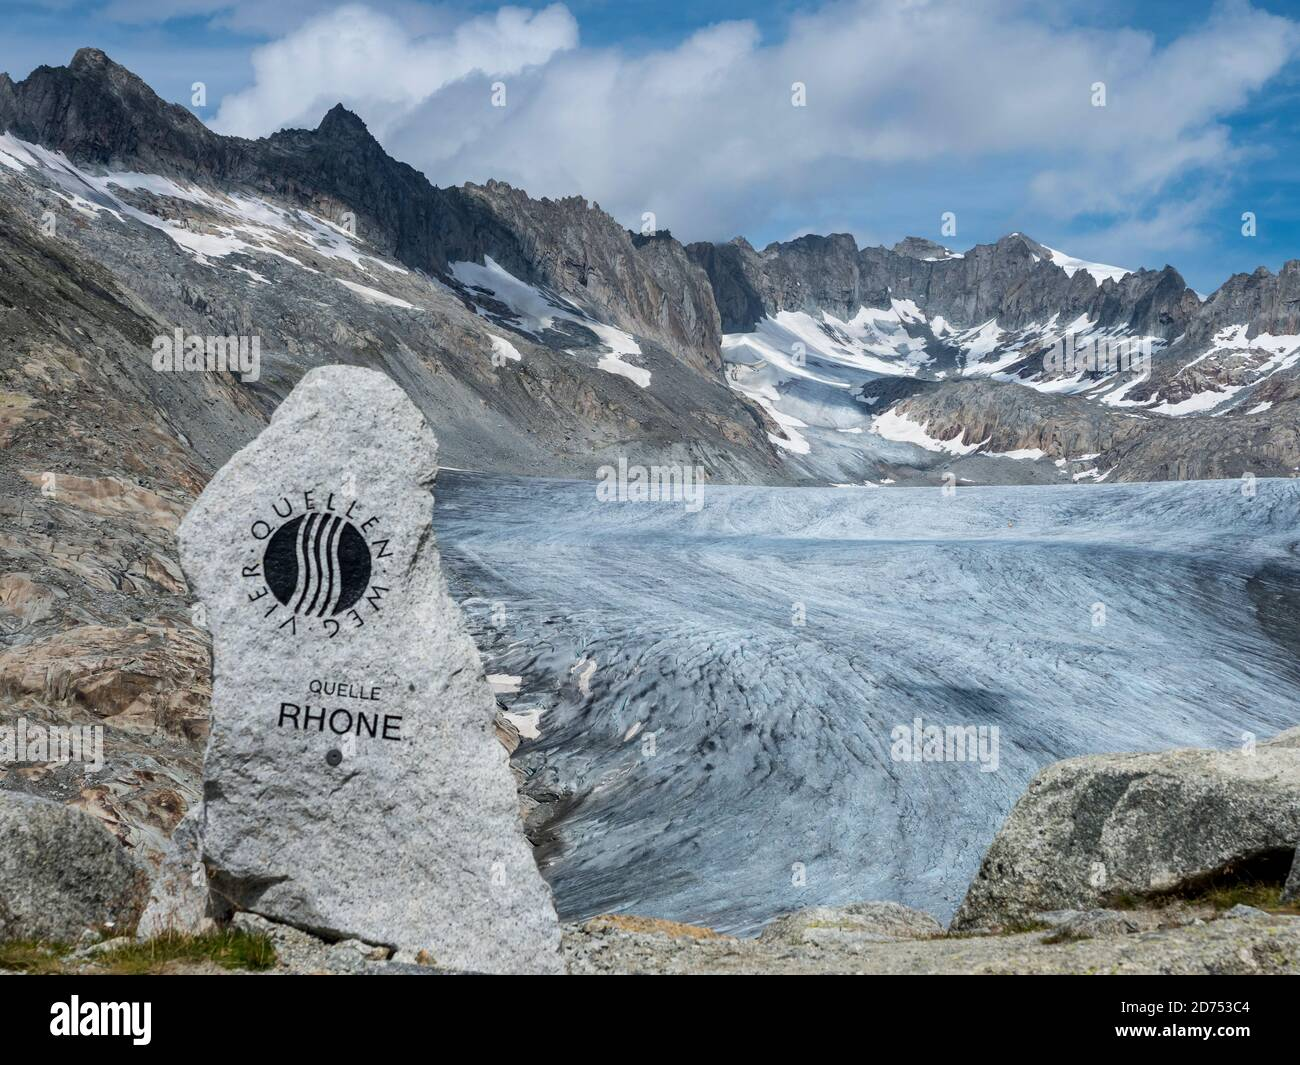 Monument above the Rhone glacier, to mark the source of the Rhone River, Switzerland. Stock Photo